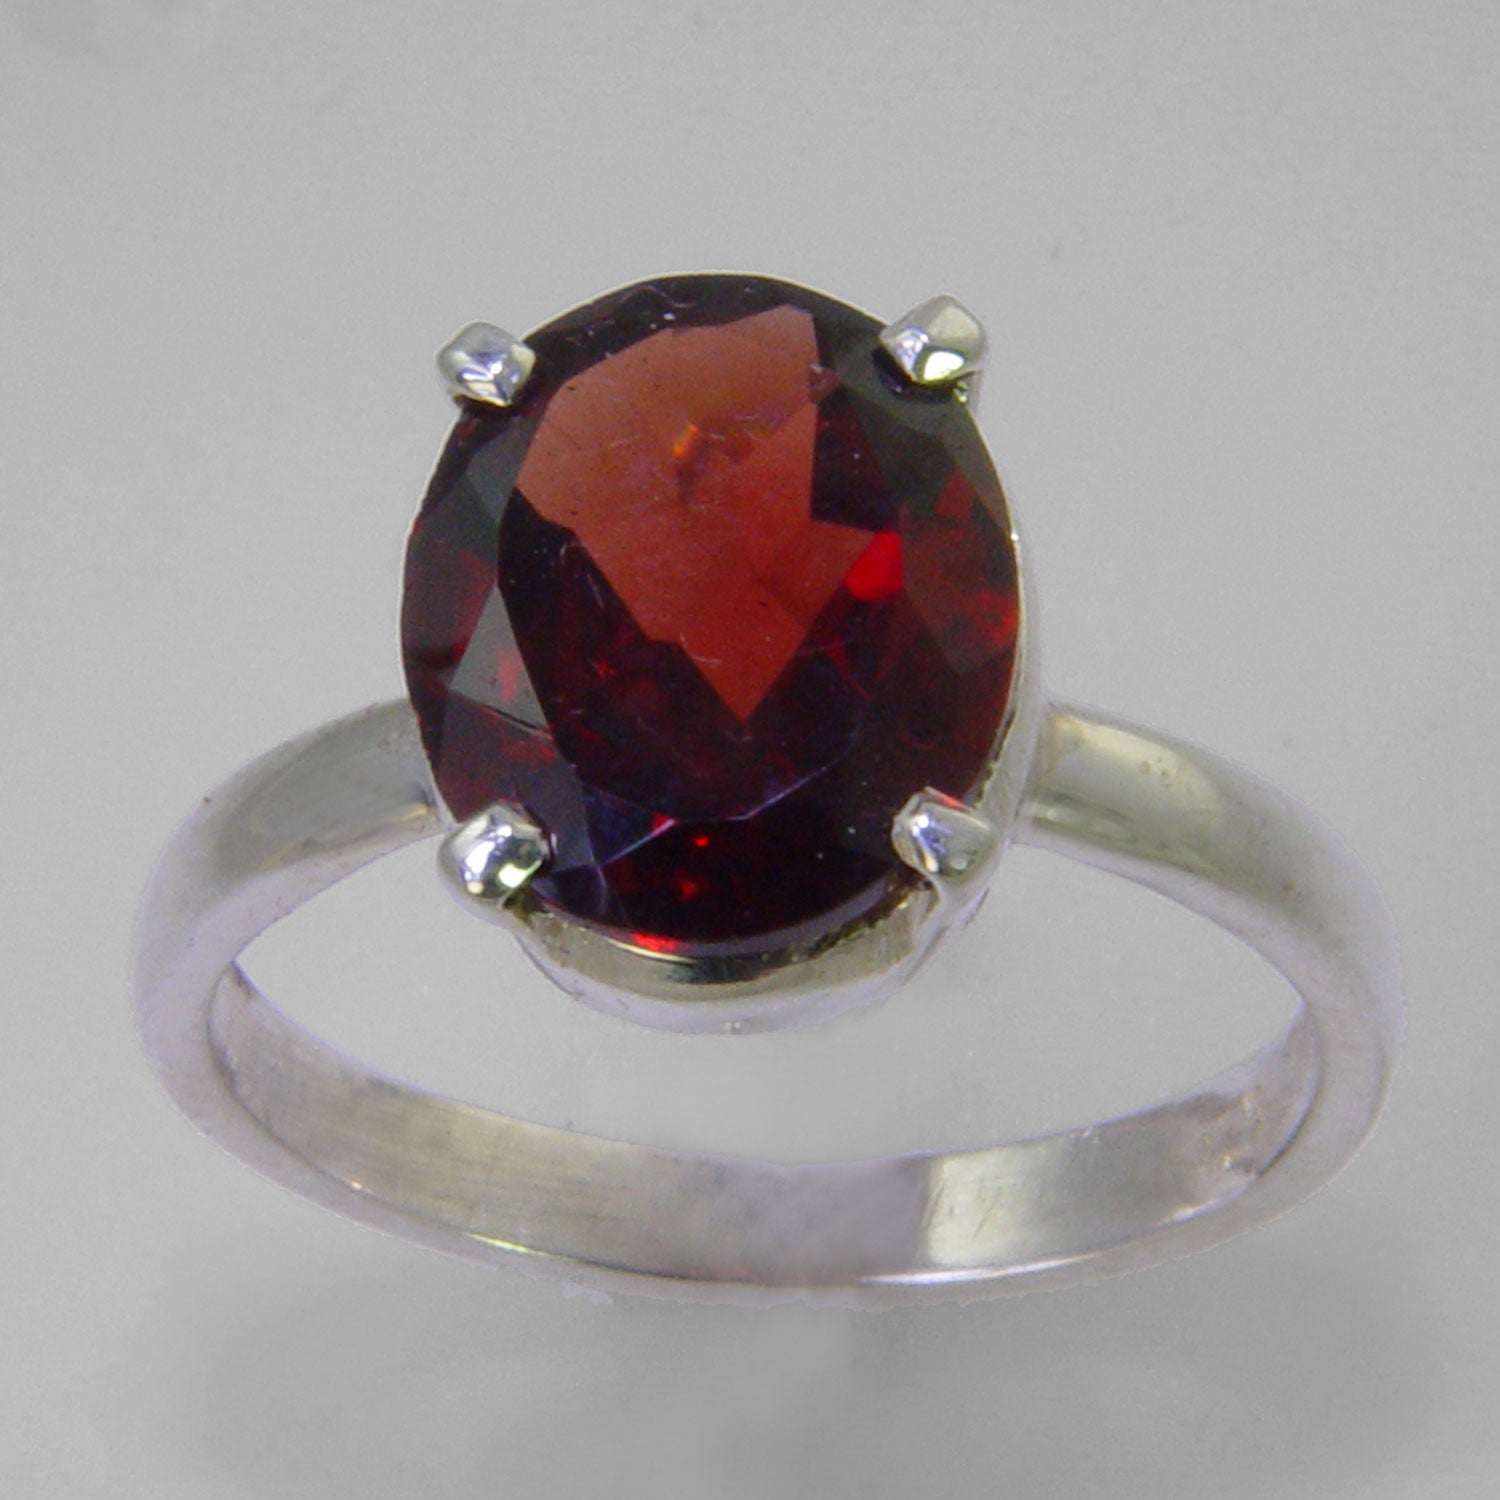 Garnet 2.5 ct Faceted Oval Sterling Silver Ring, Size 7